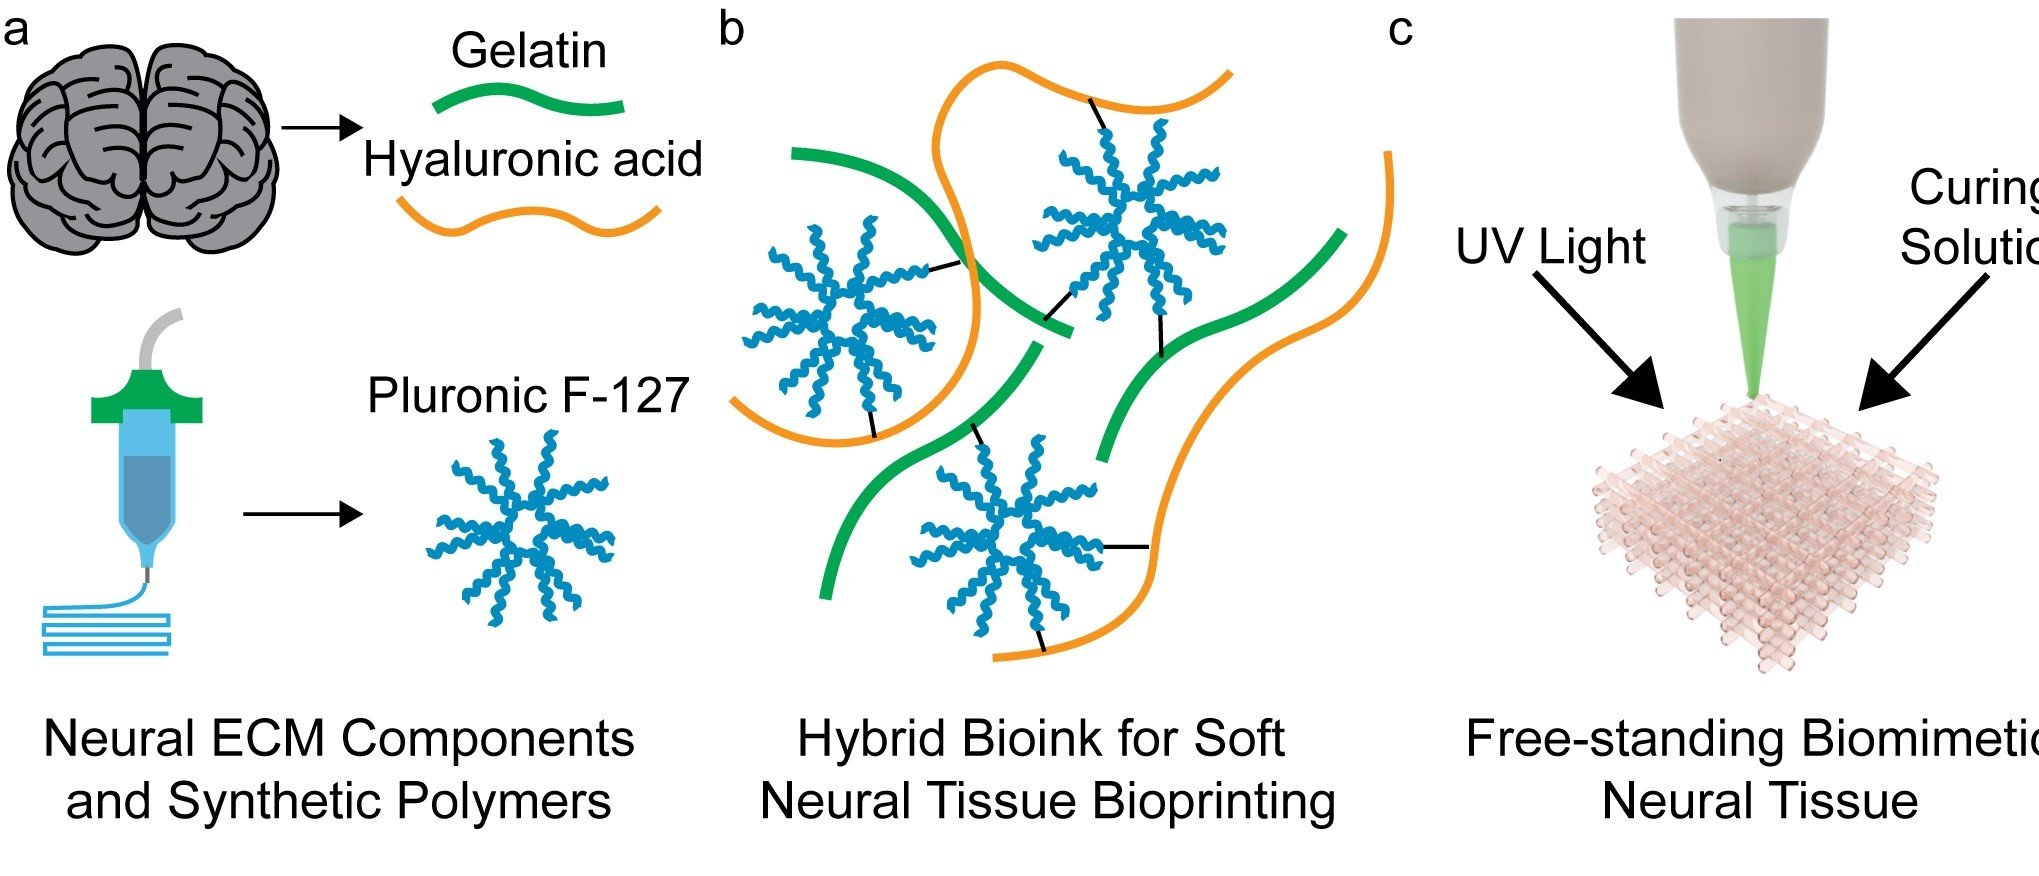 Process- and bio-inspired hydrogels for 3D bioprinting of soft free-standing neural and glial tissues, Biofabrication, 11, 025009, (2019)